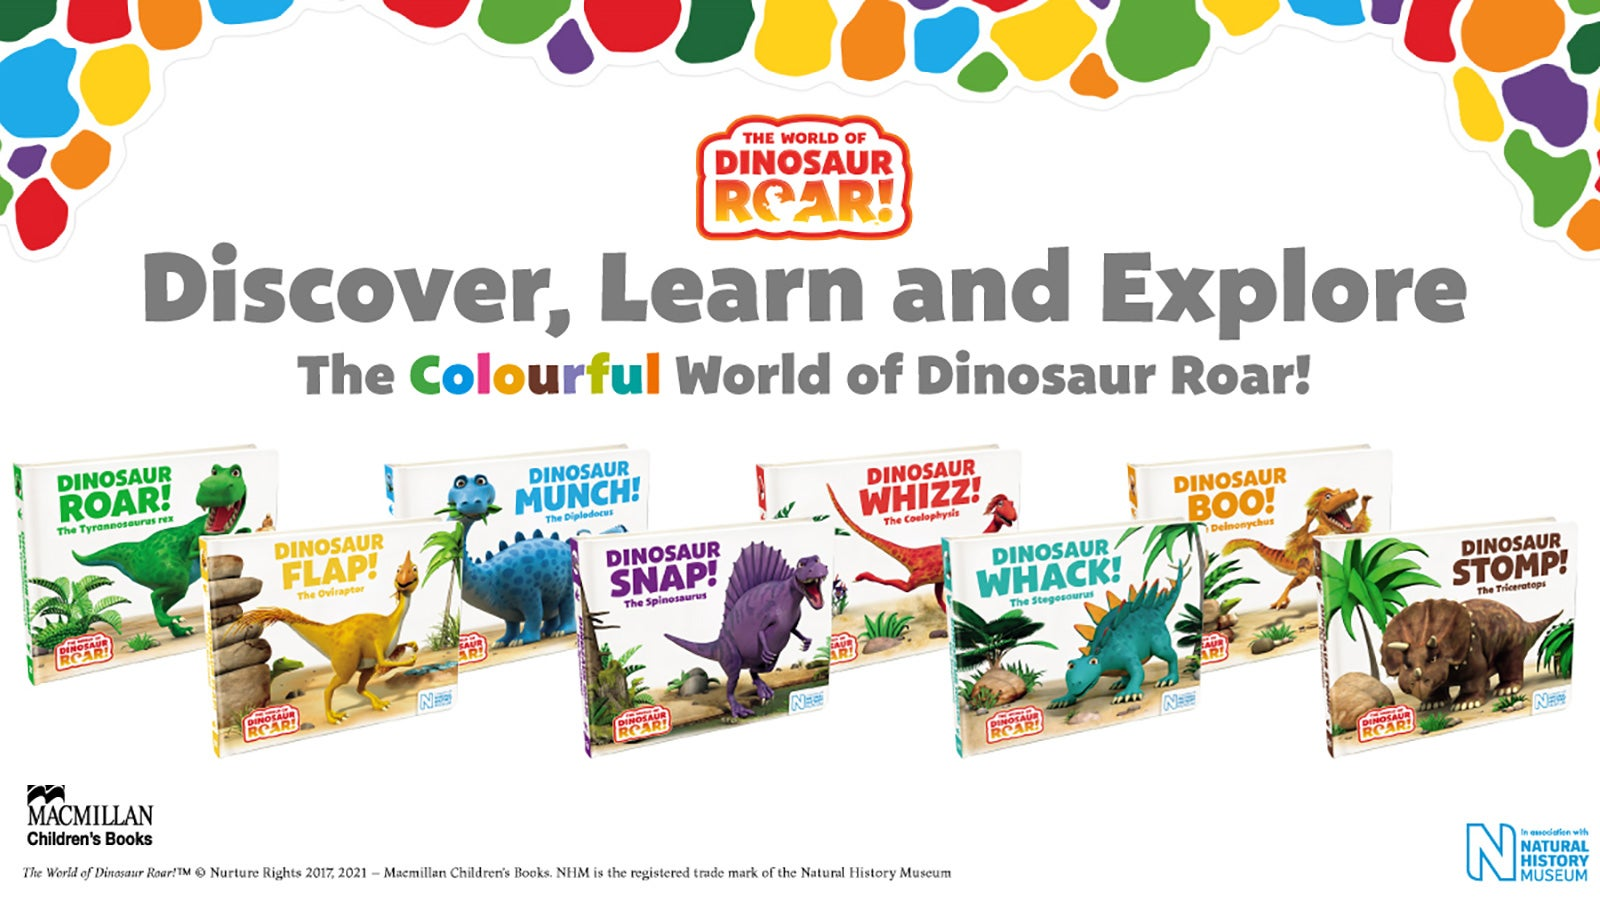 A colourful graphic that shows all of the Dinosaur Roar! series books